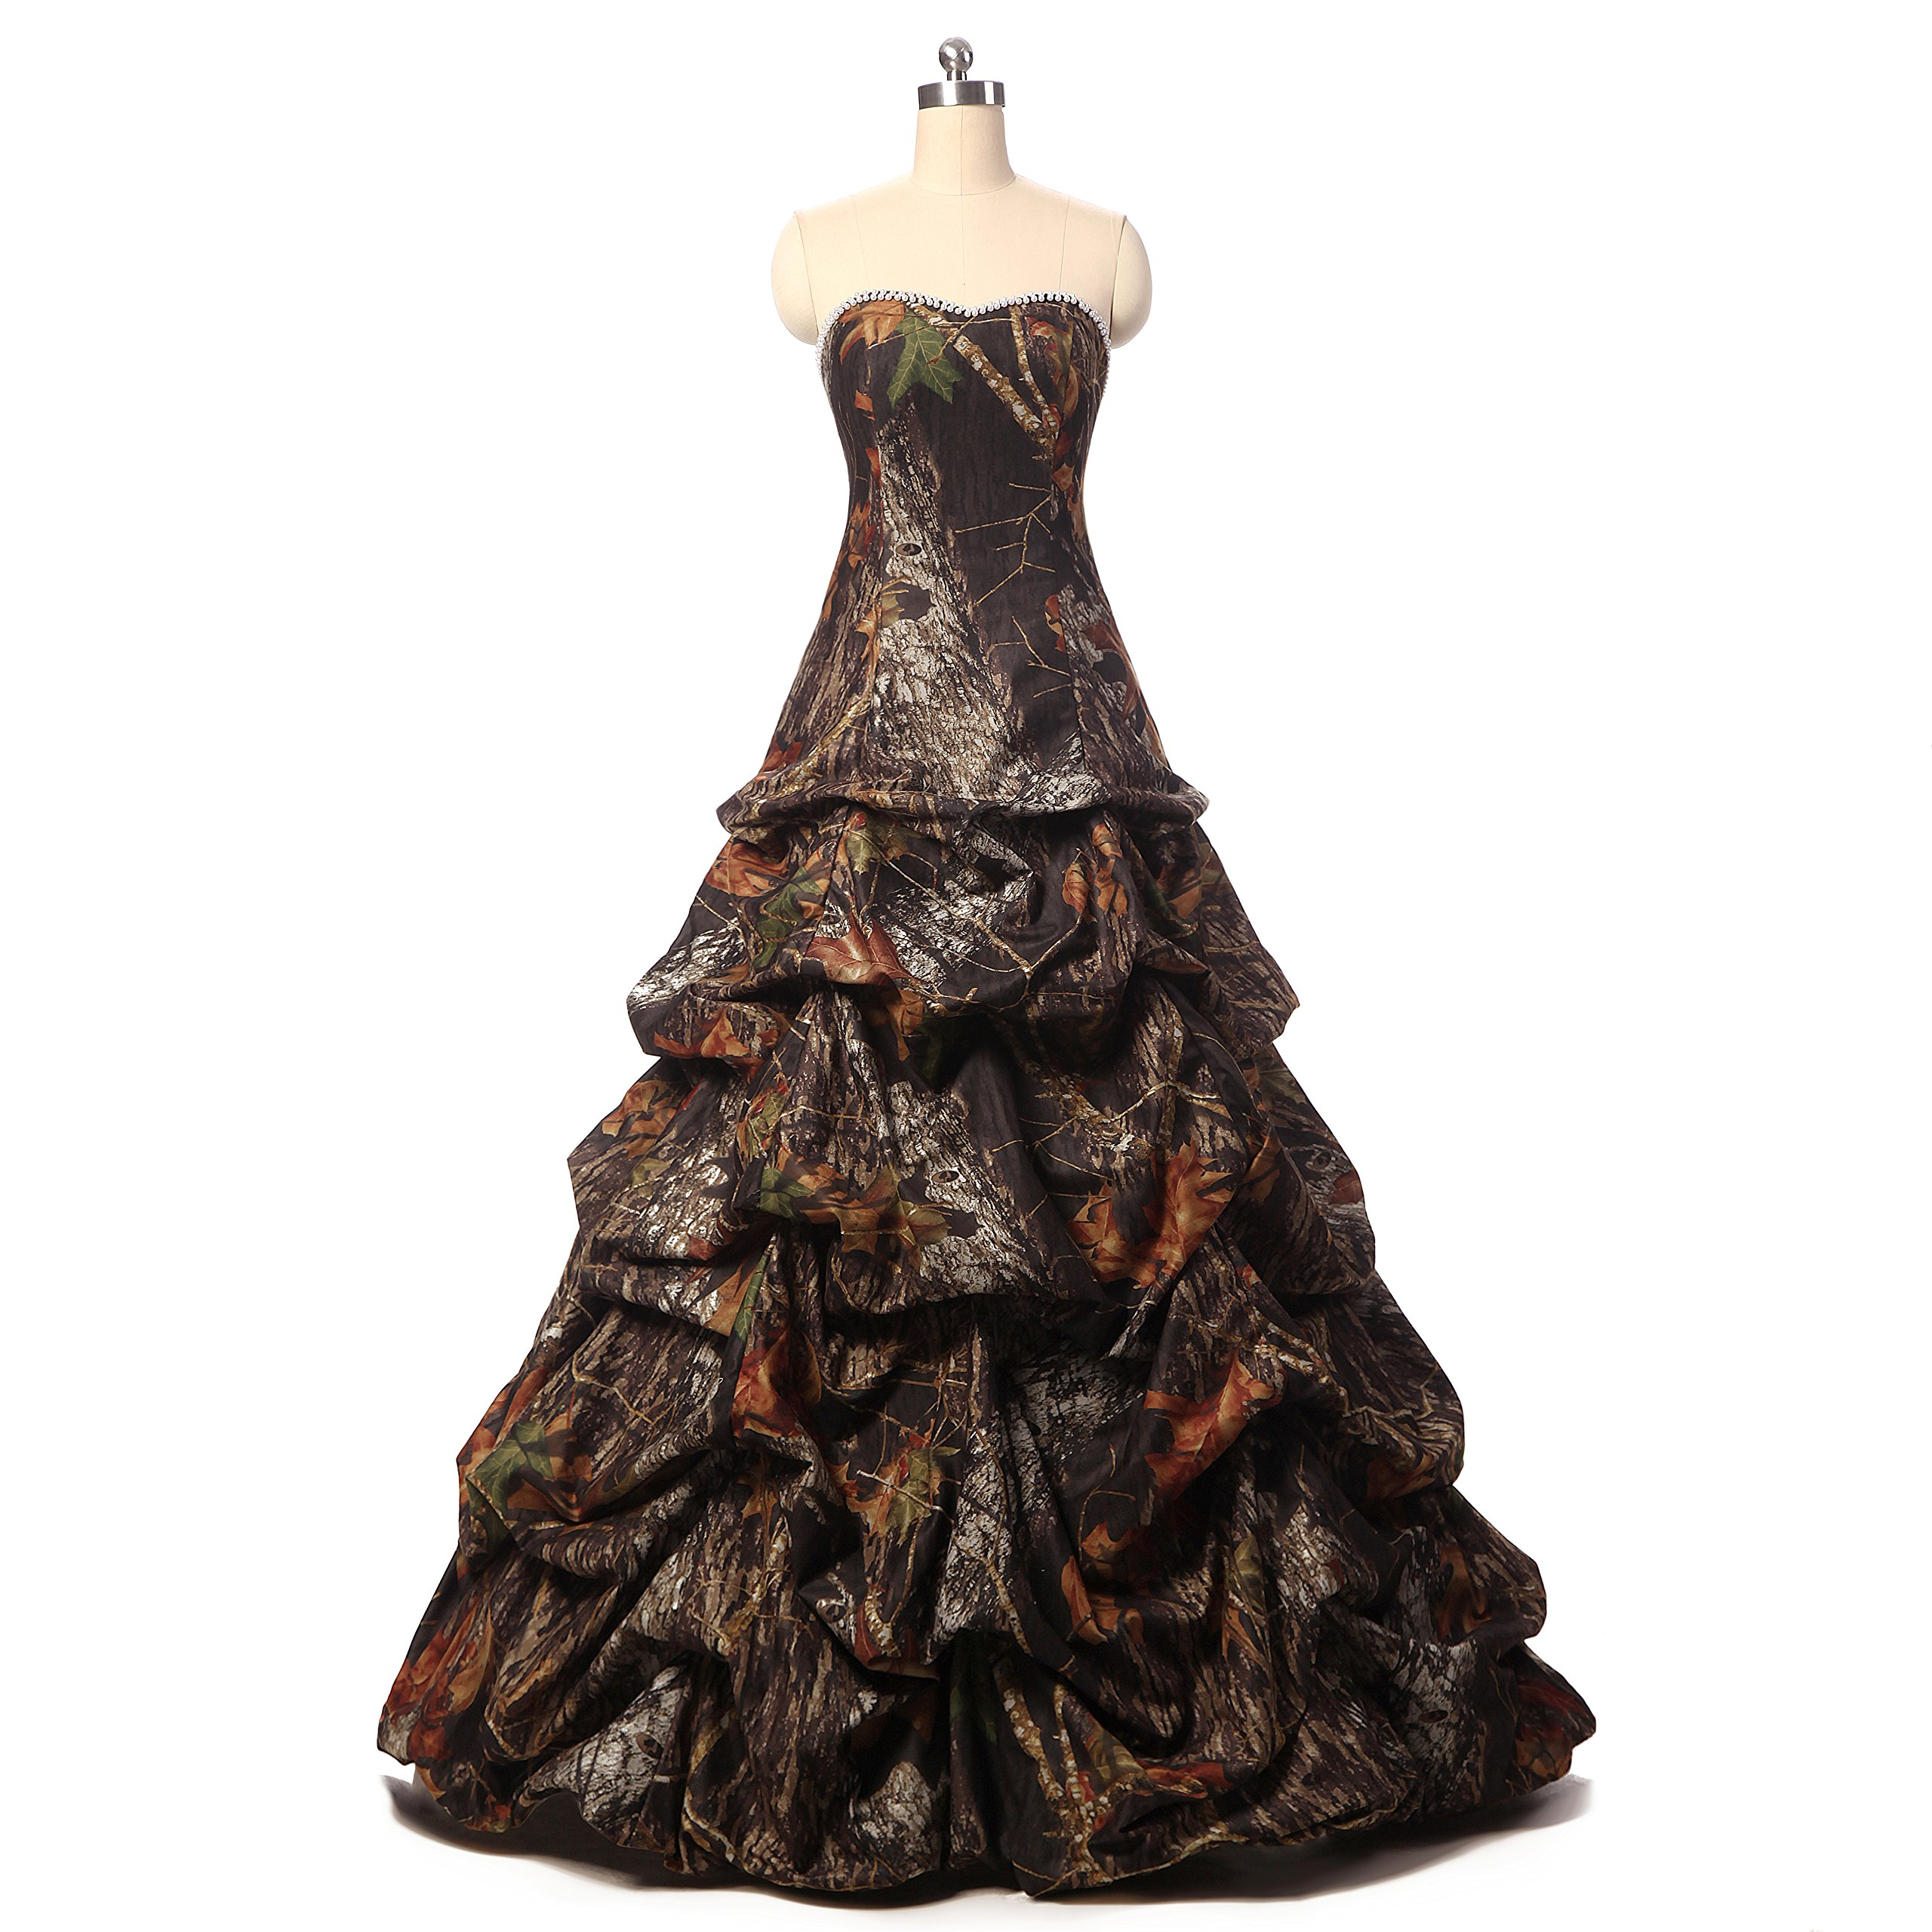 YOUAREFACNY Womens Camouflage Ball Gown Bride Dress for Wedding Camo Evening Gown